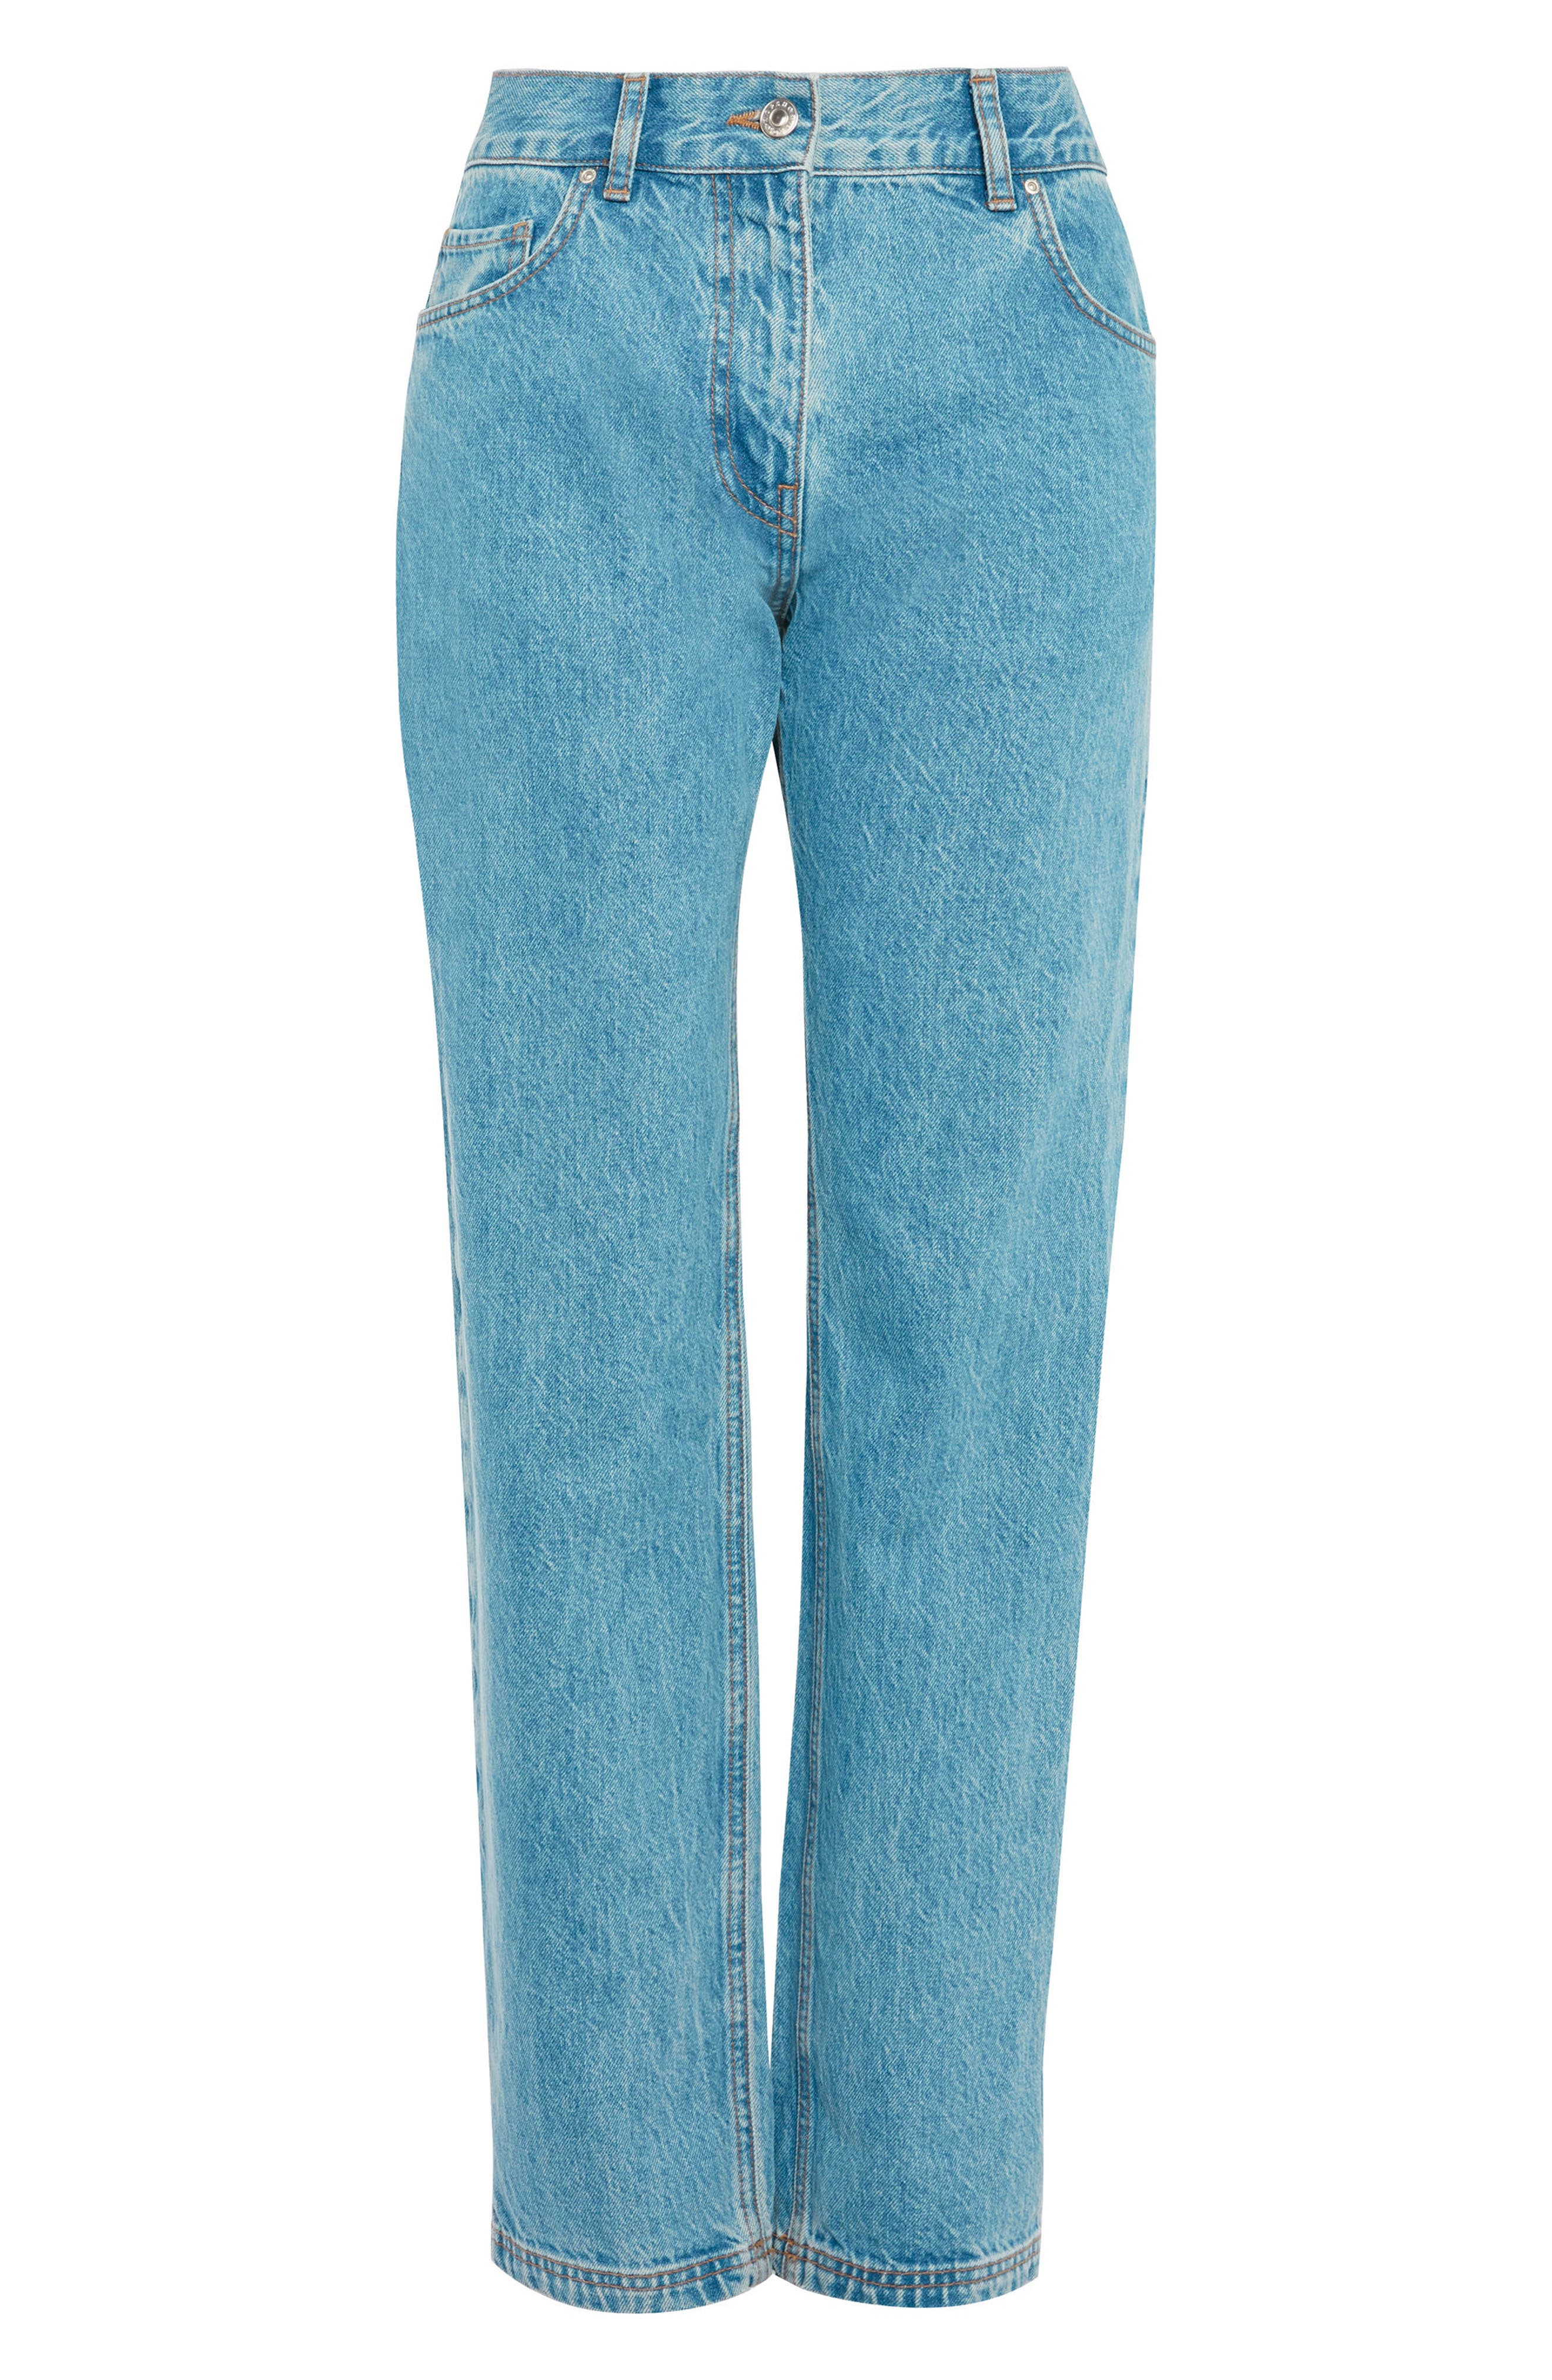 Topshop Light Wash Straight Leg Jeans